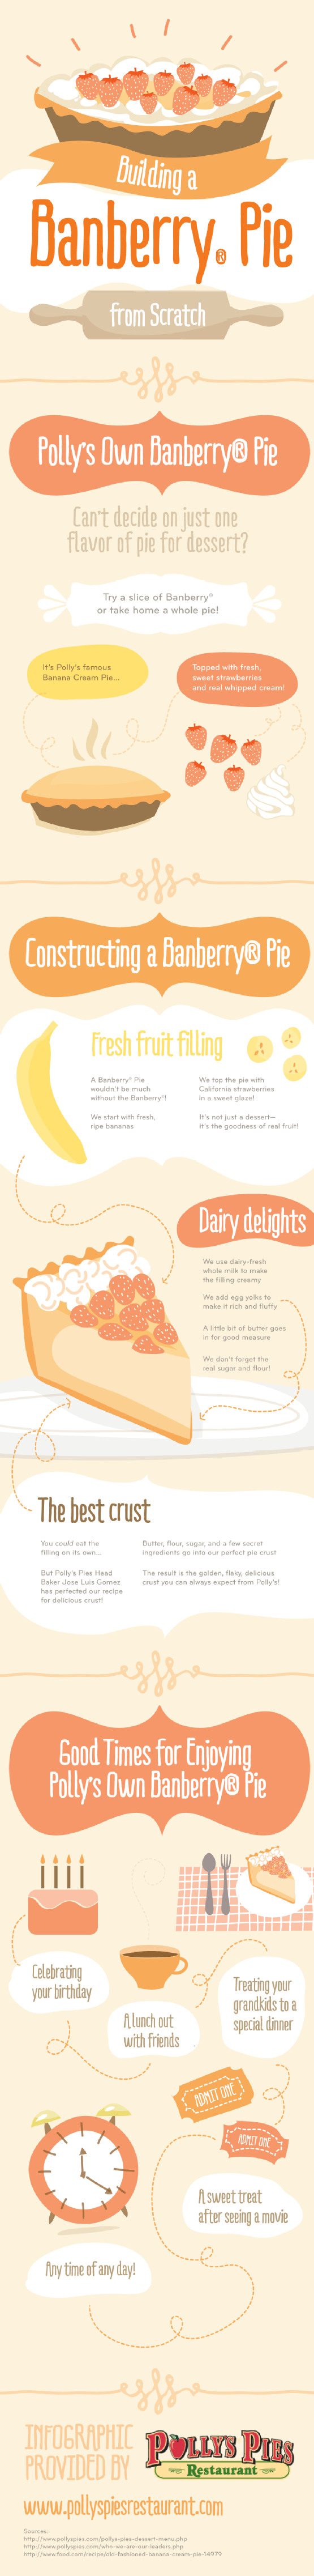 Building-A-Banberry-Pie-from-Scratch #Infographic